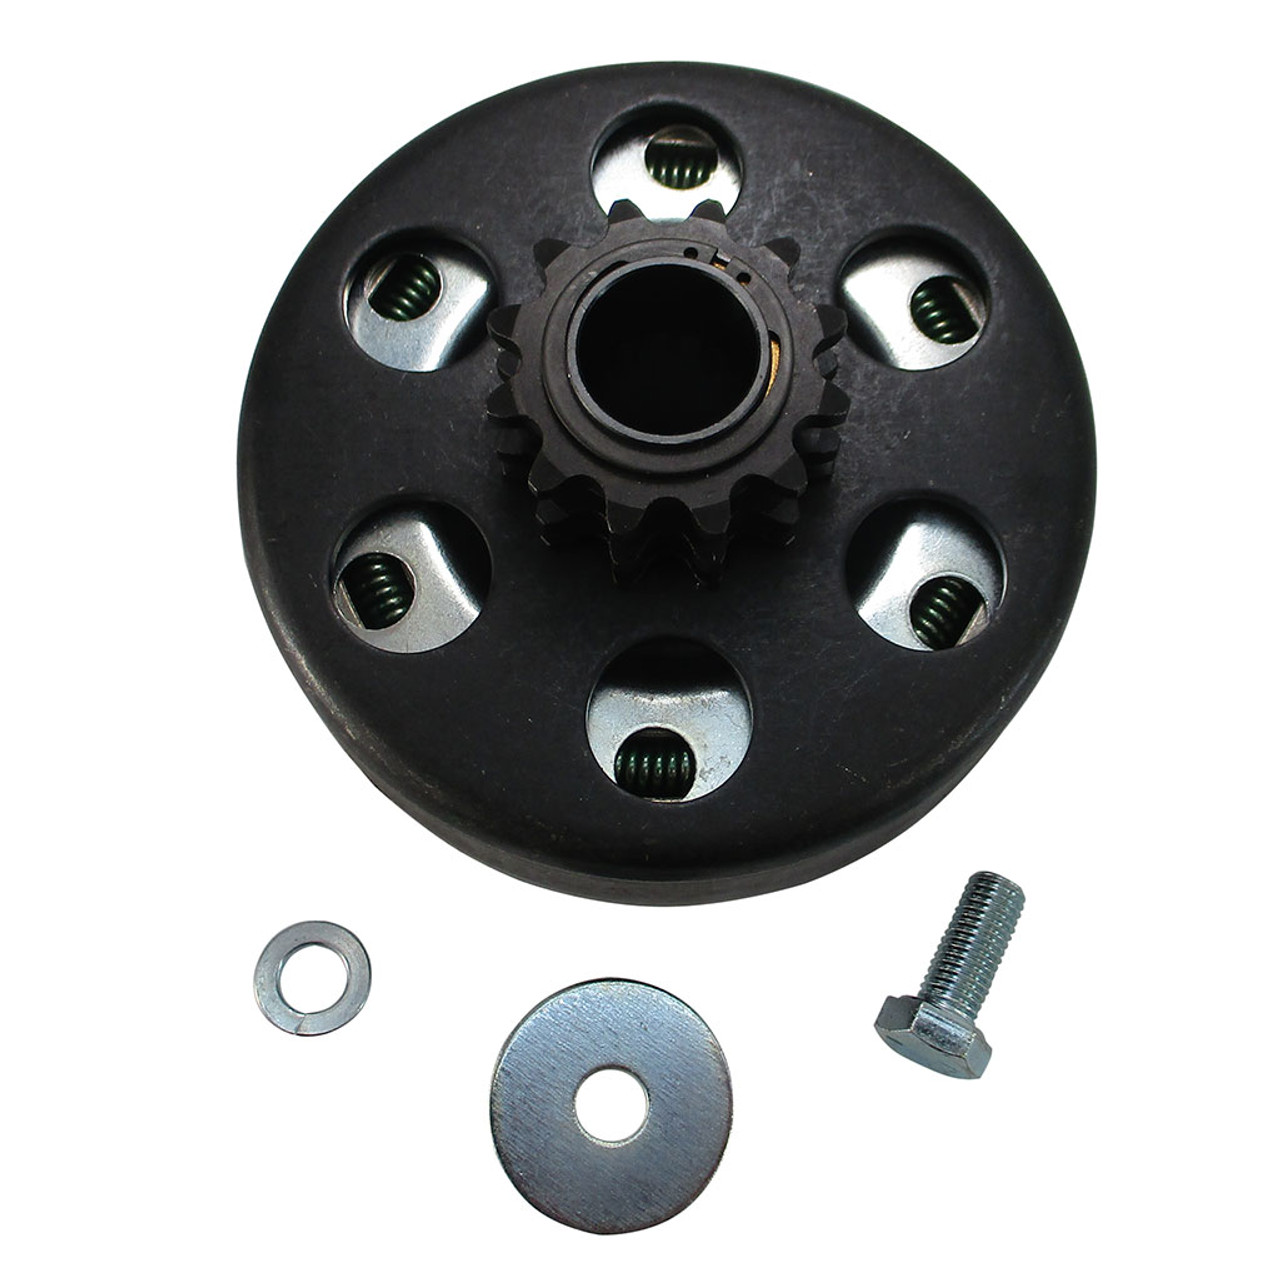 """Max-Torque Dual Sprocket 3/4"""" Clutch for Two Speed MiniBikes"""